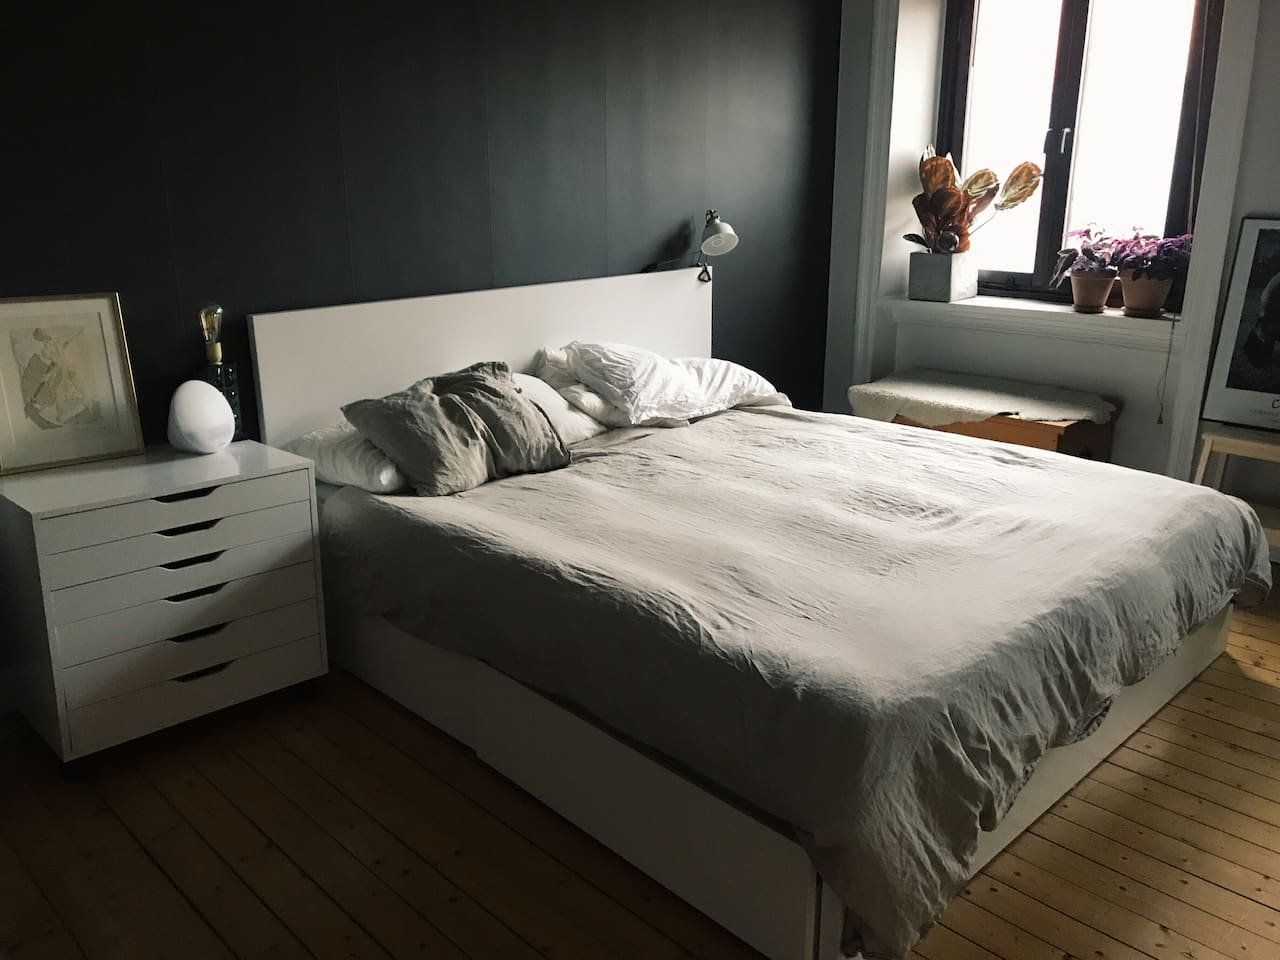 Large bedroom with 180cm bed, room for storing clothes and two windows.